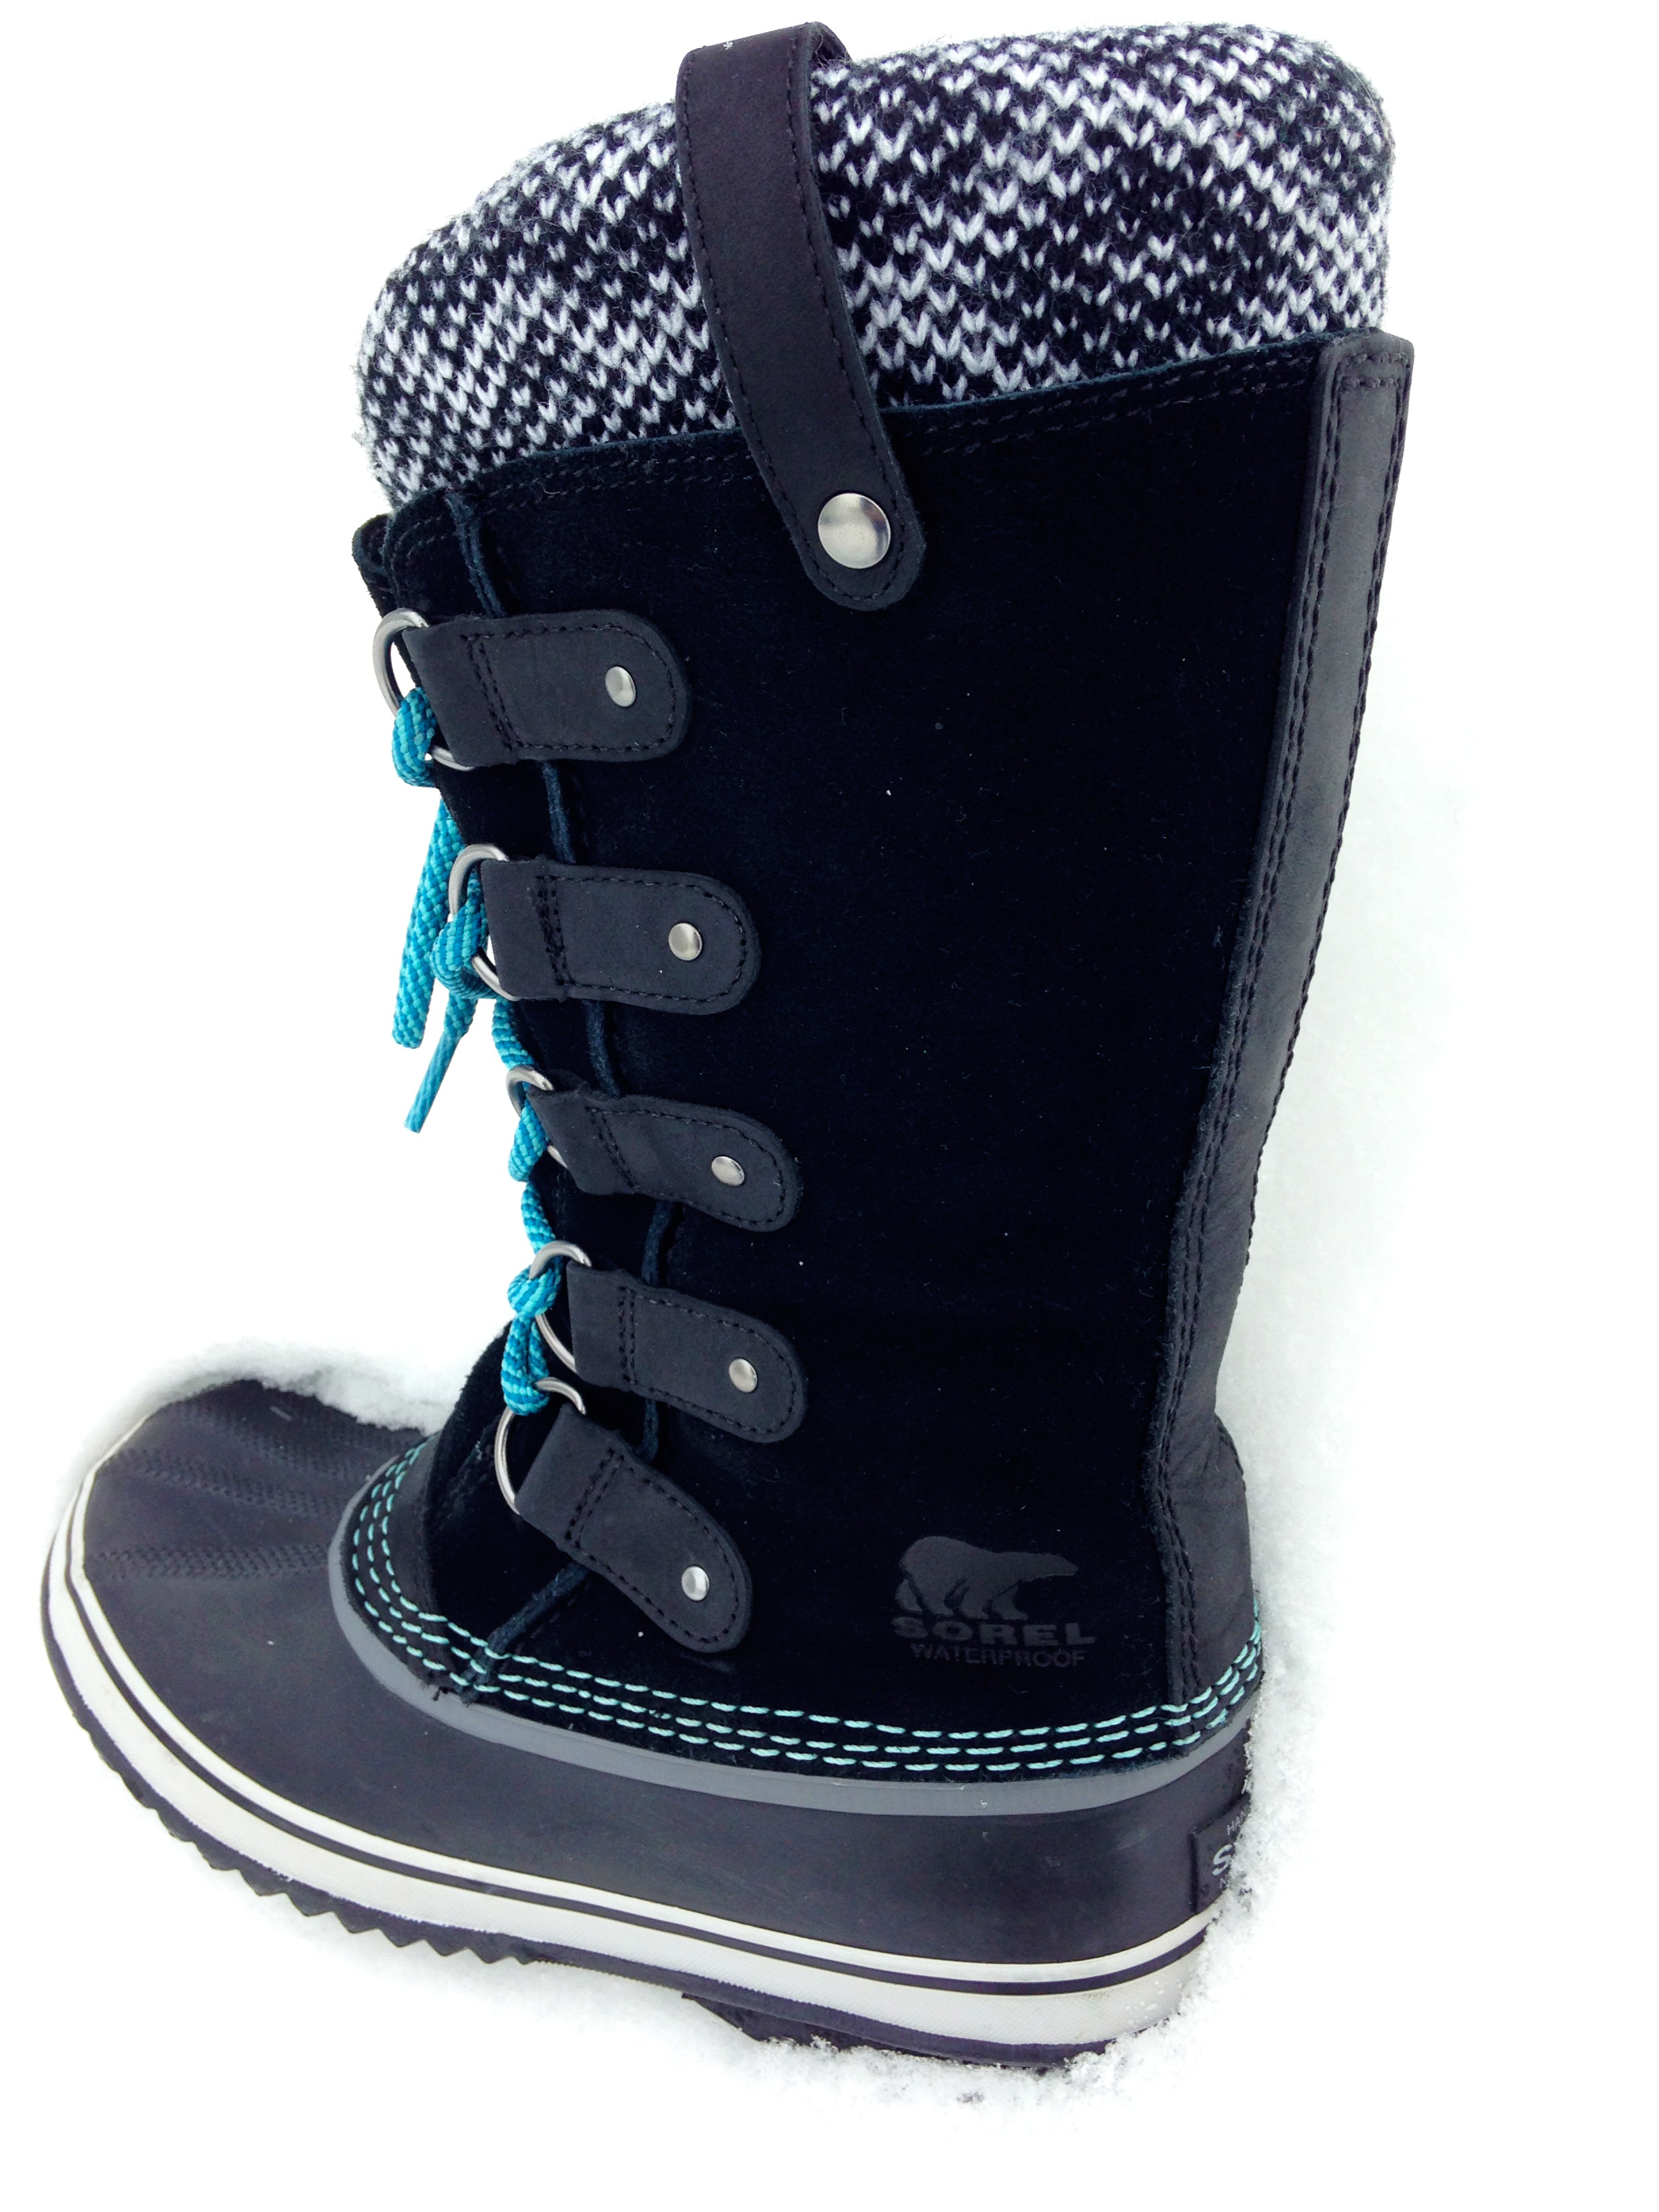 sorel joan of arctic knit boot gear review busted wallet. Black Bedroom Furniture Sets. Home Design Ideas